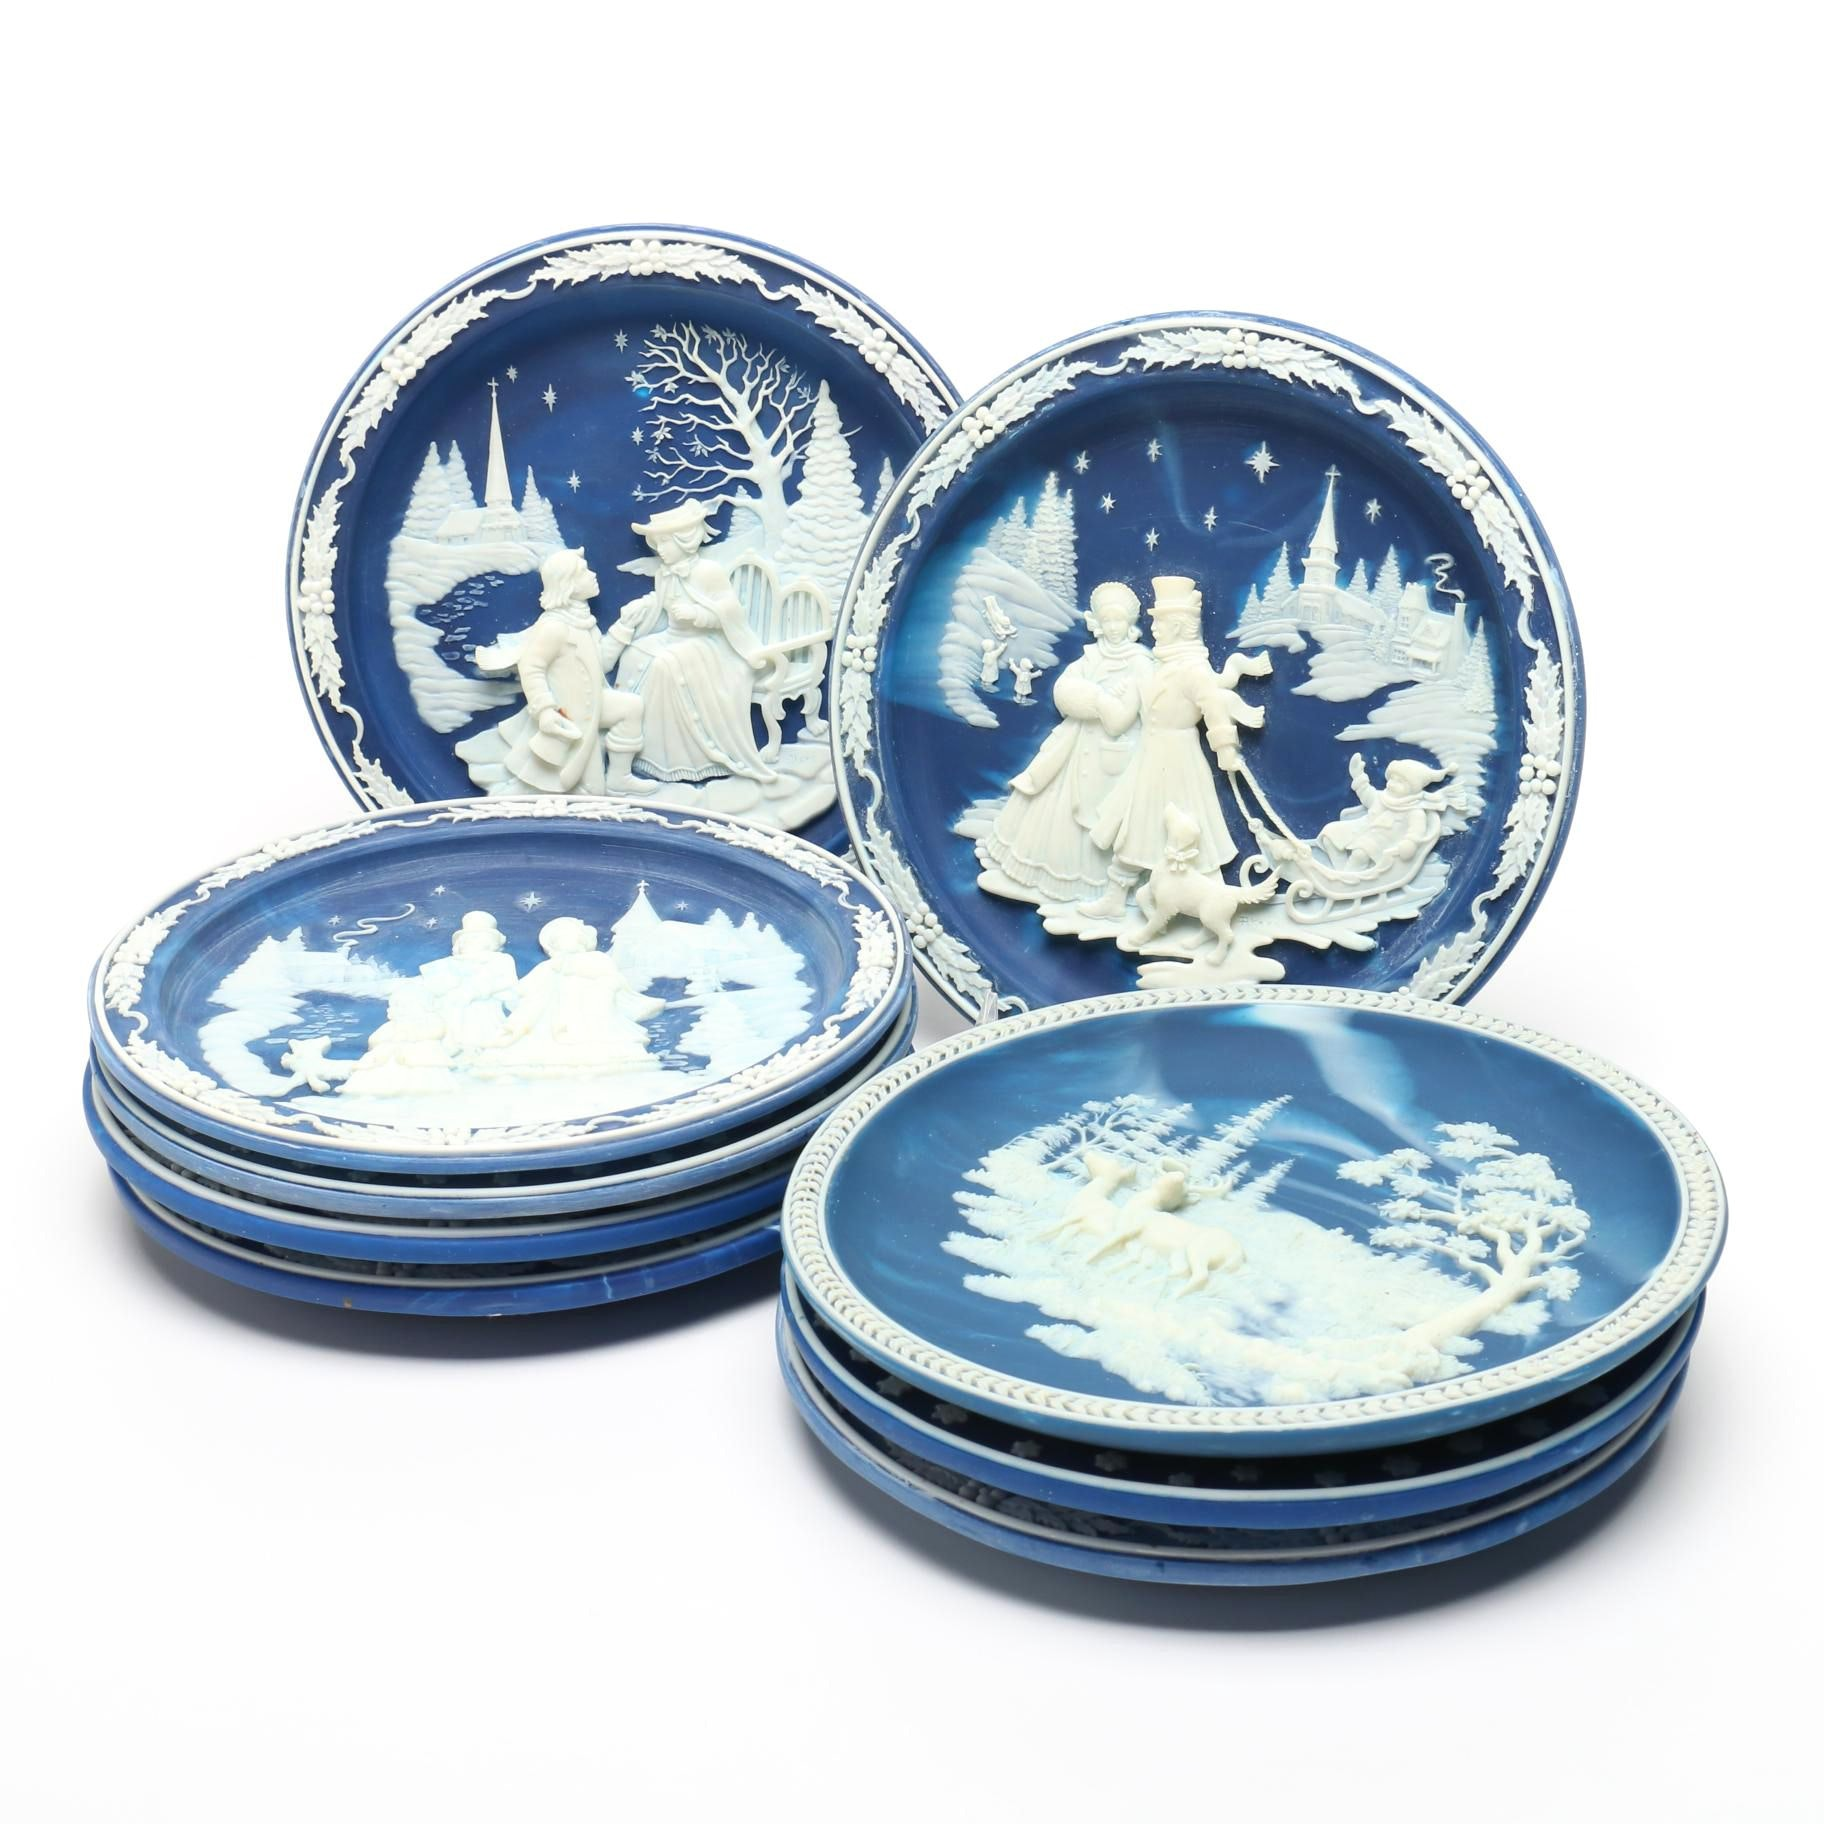 Christmas and Winter Scene Incolay Stone Decorative Plates